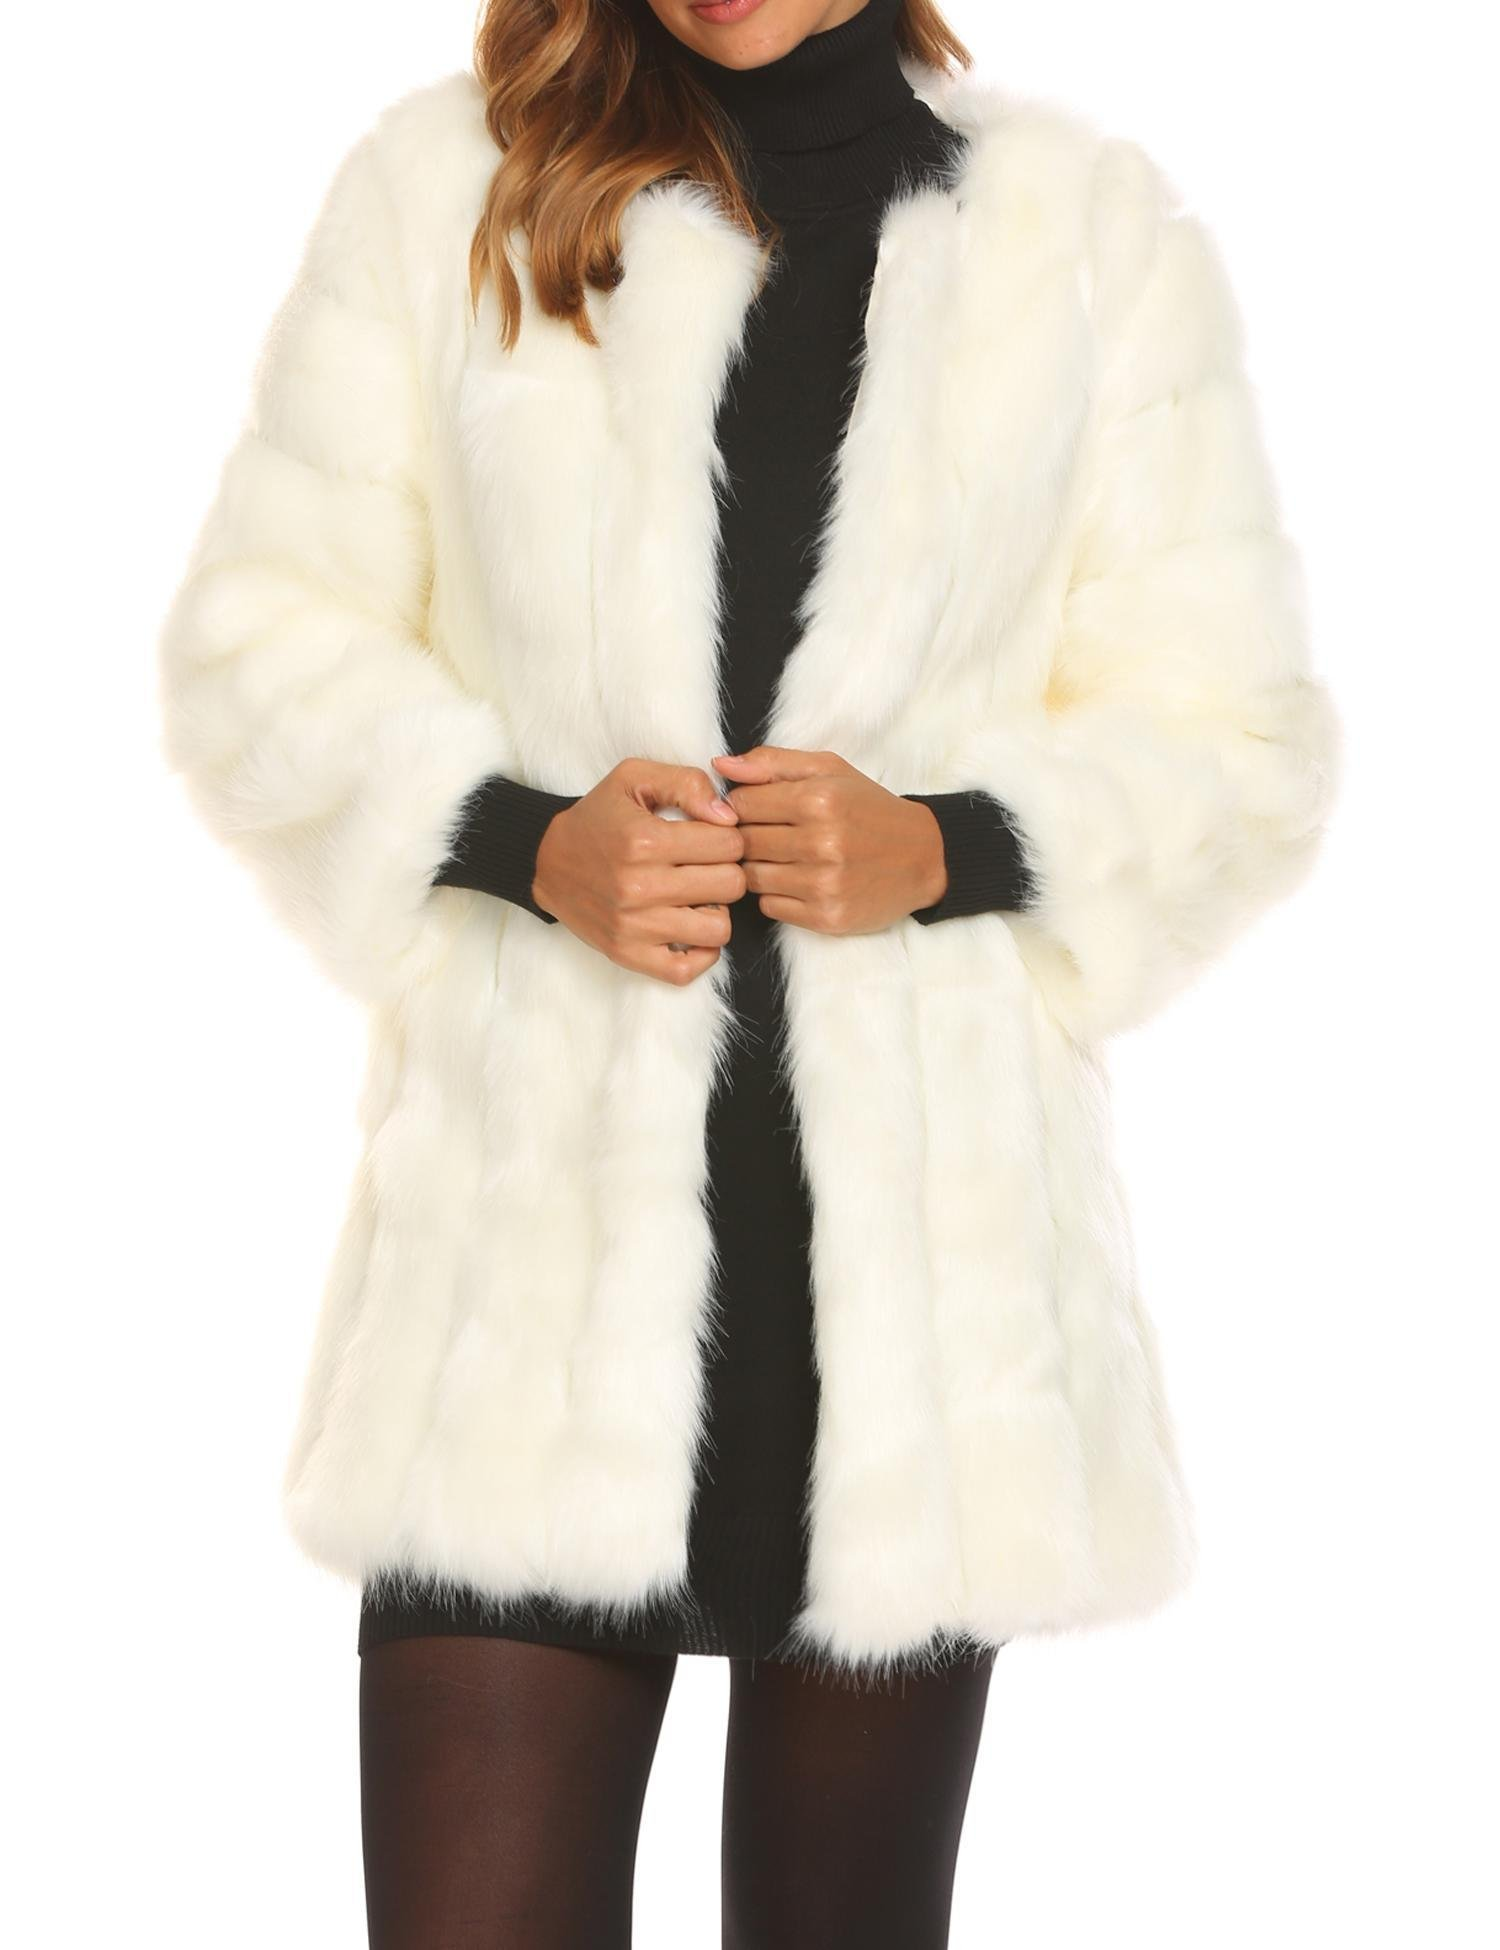 Soteer Women's Faux Fur Coat Winter Warm Fur Jacket Outerwear Midi Length White M